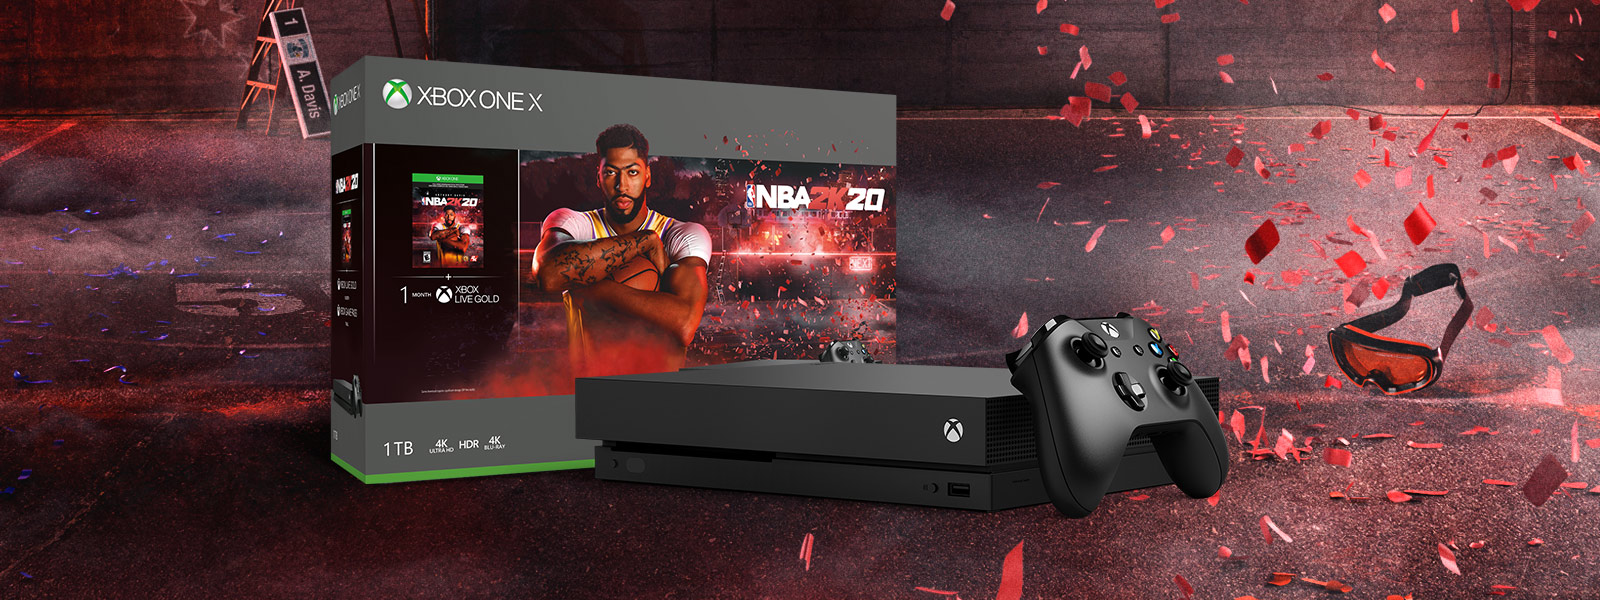 Xbox One X NBA 2K20 bundle art in front of a background with an outdoor basketball court and red confetti